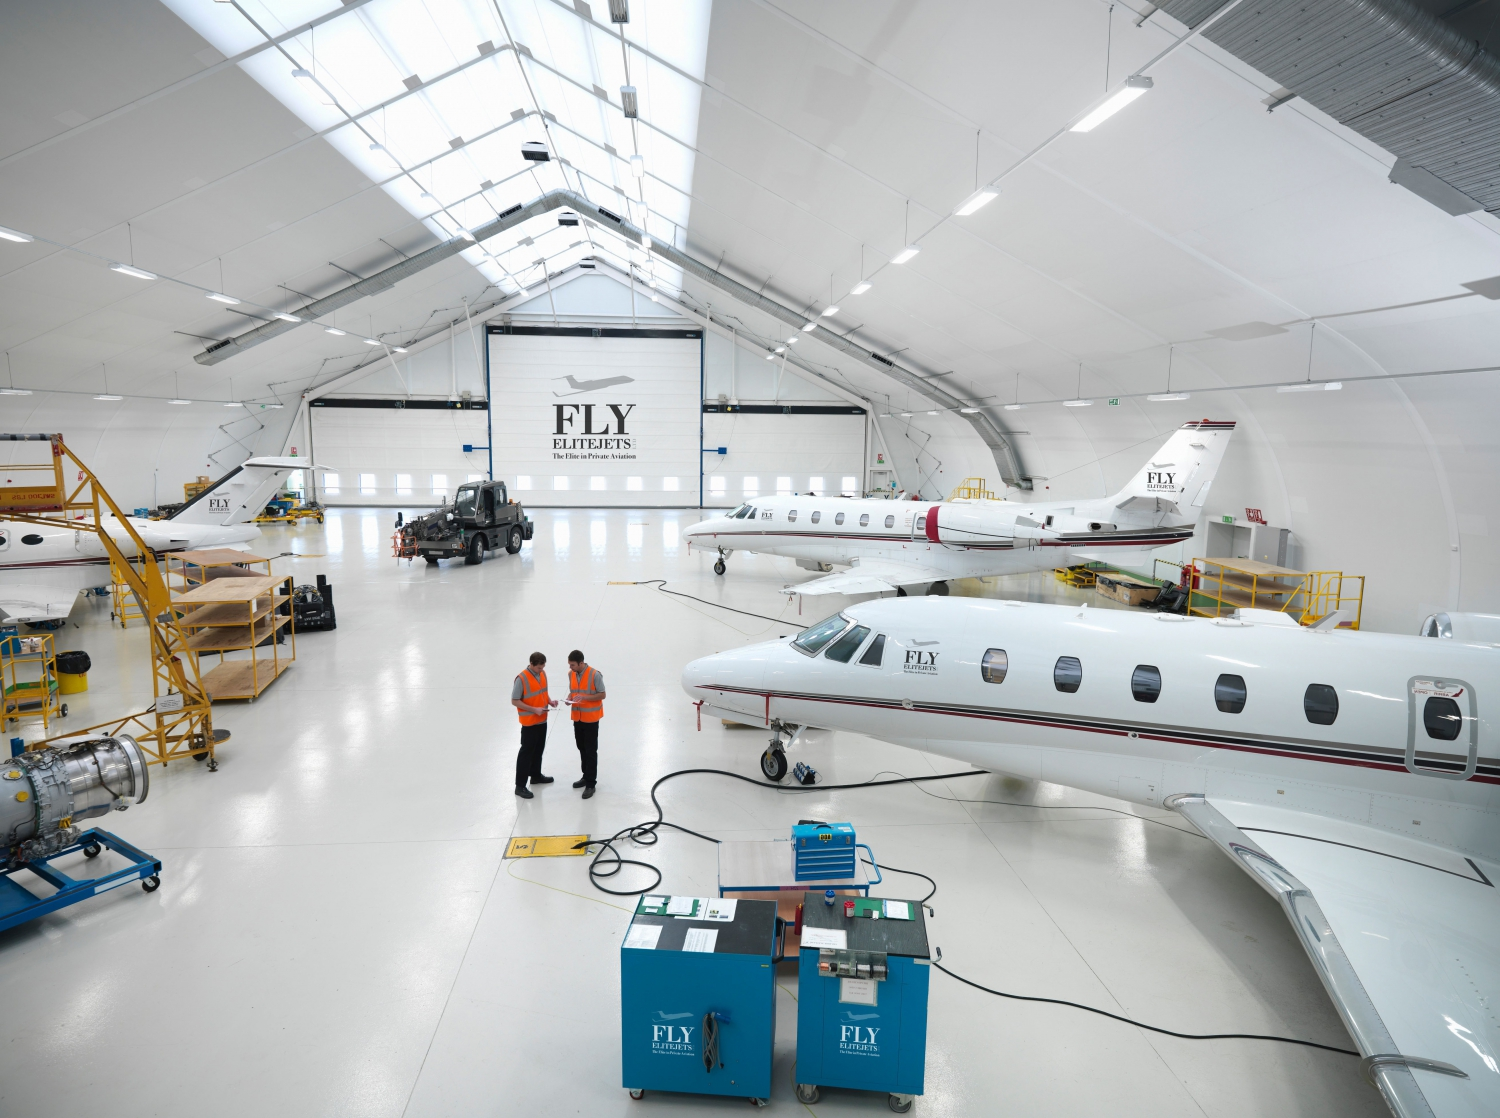 Fly Elite Jets lite Management